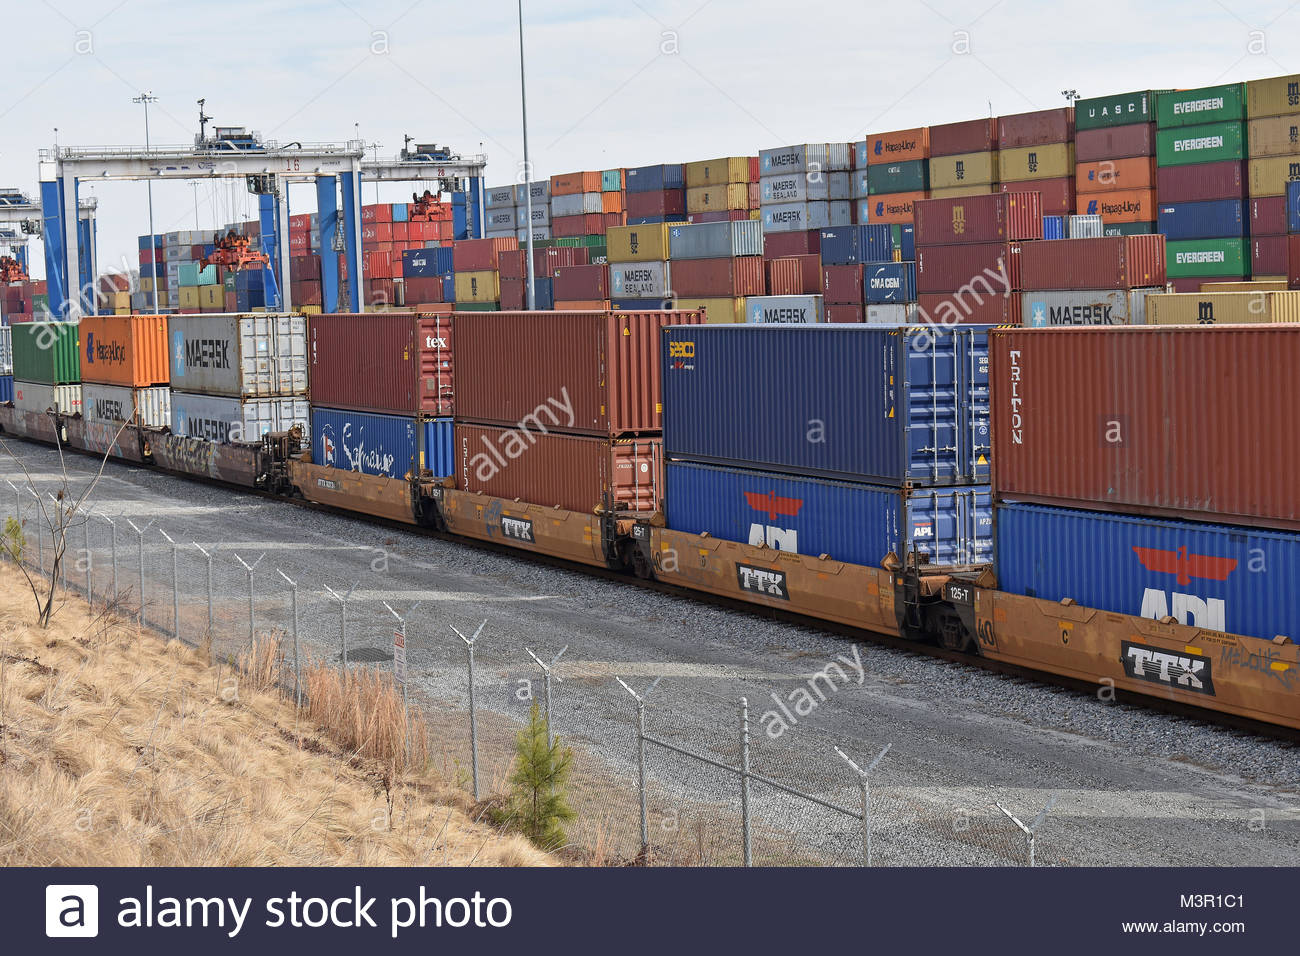 Inland Port Greer (SC / USA) pictured with containers and cranes - Stock Image